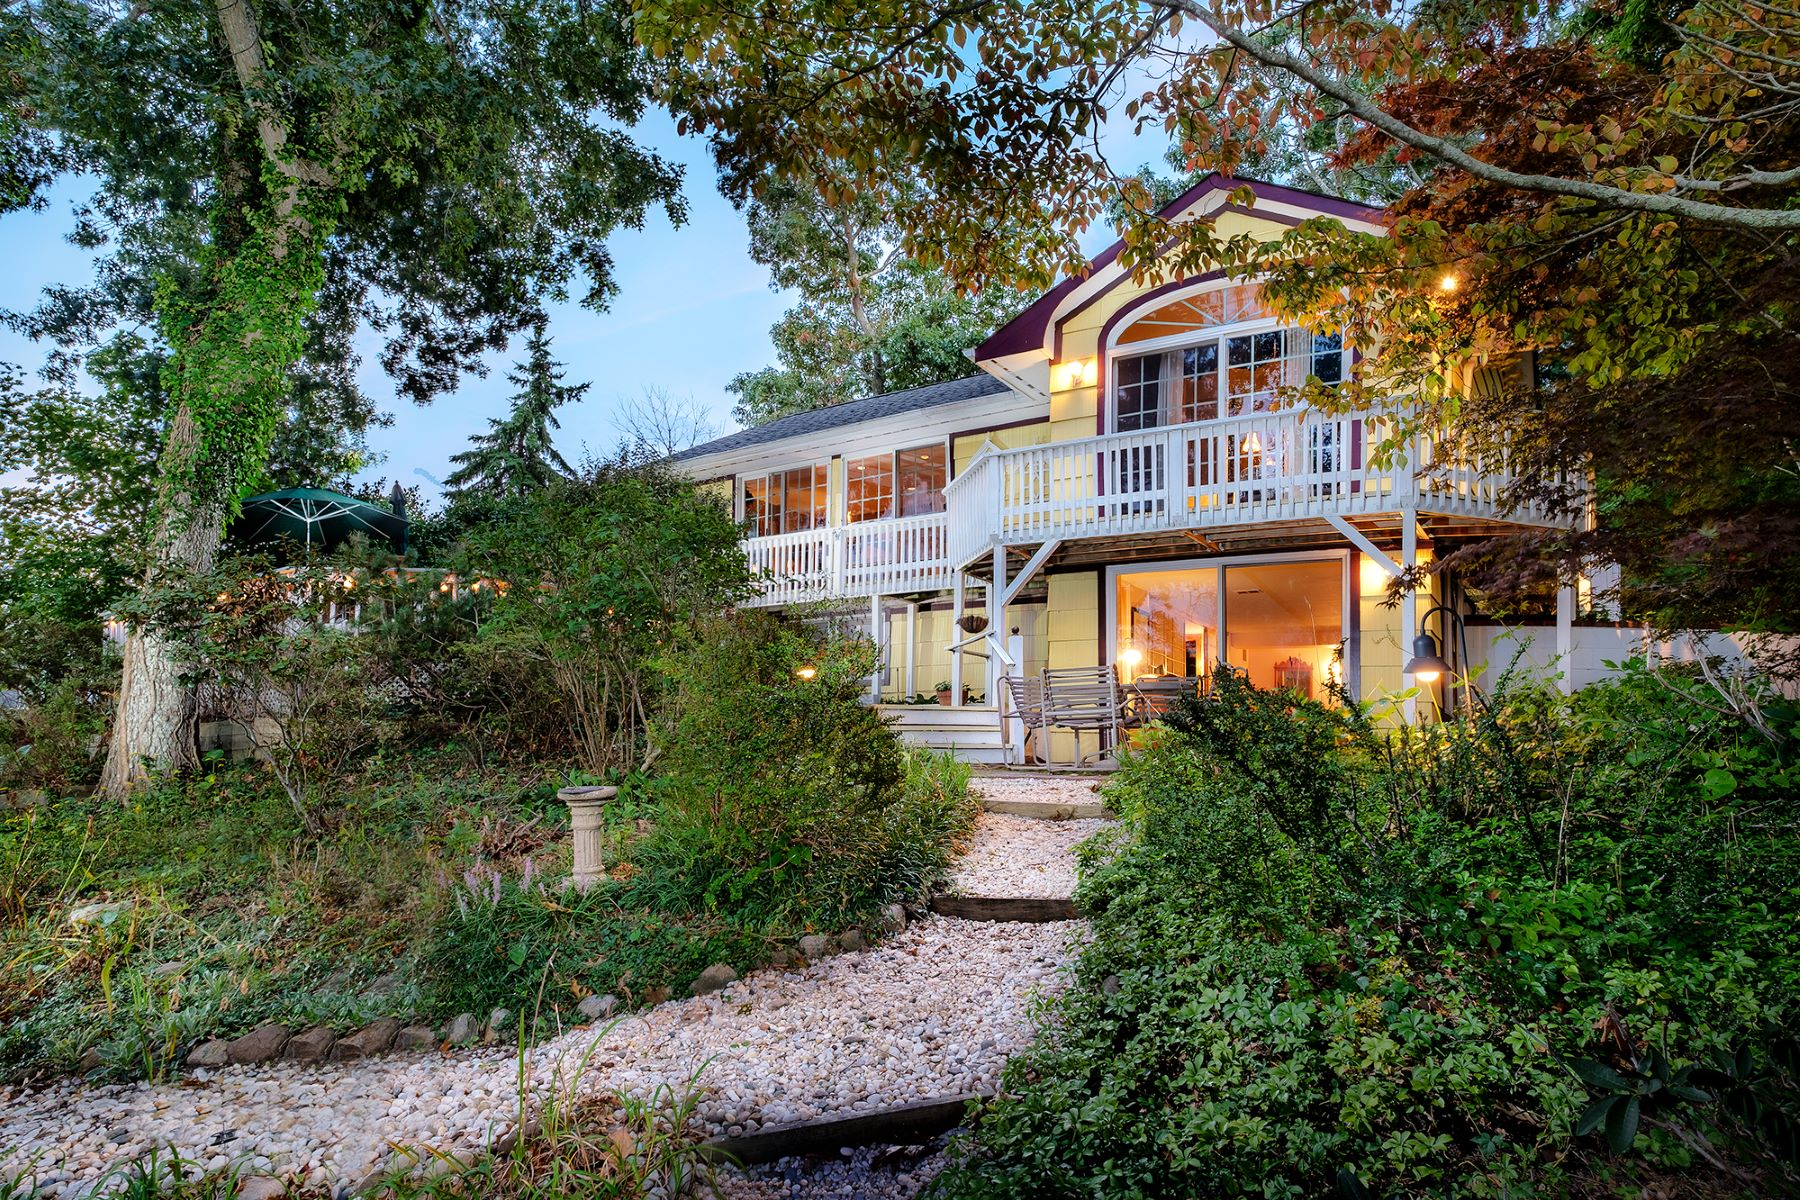 Single Family Home for Sale at Cottage 1475 Meday Ave Mattituck, New York, 11952 United States